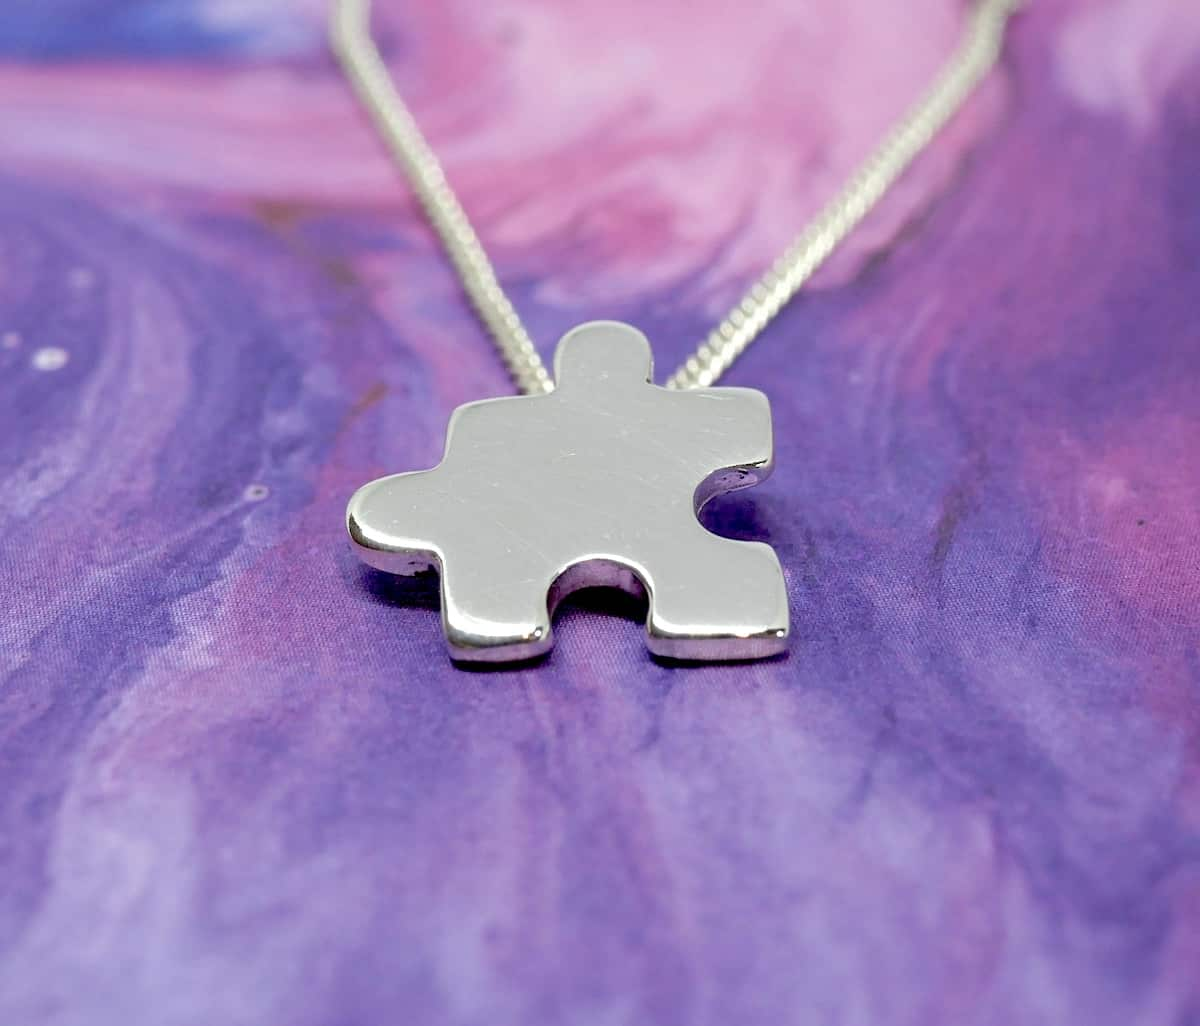 jigsaw-handmade-sterling-silver-pendant-with-fine-chain-by-purplefish-designs-by-andrea_purplefish